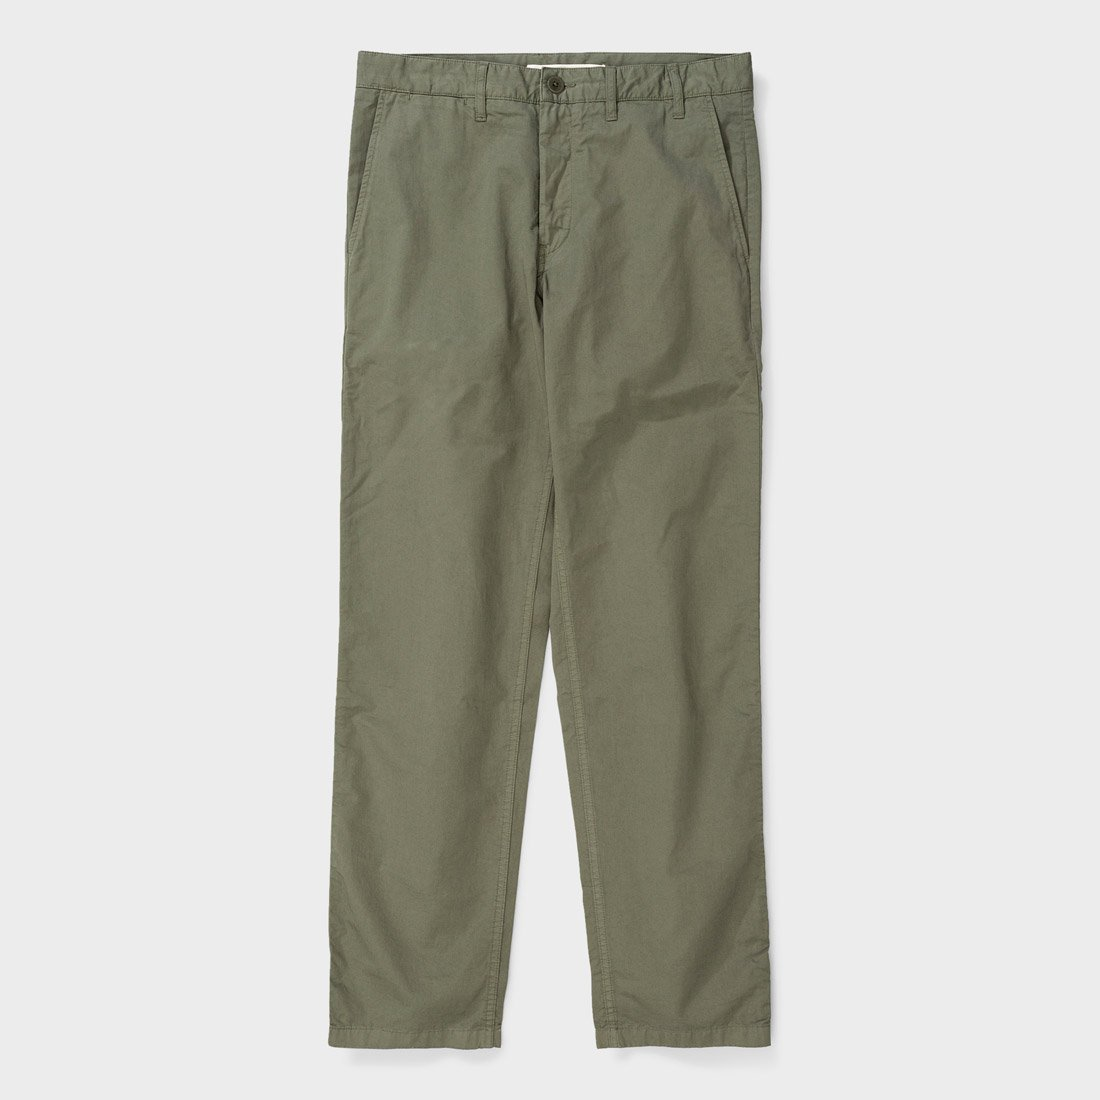 2a9c7efcc95 Norse Projects Aros Light Twill Pant Dried Olive – Wayward